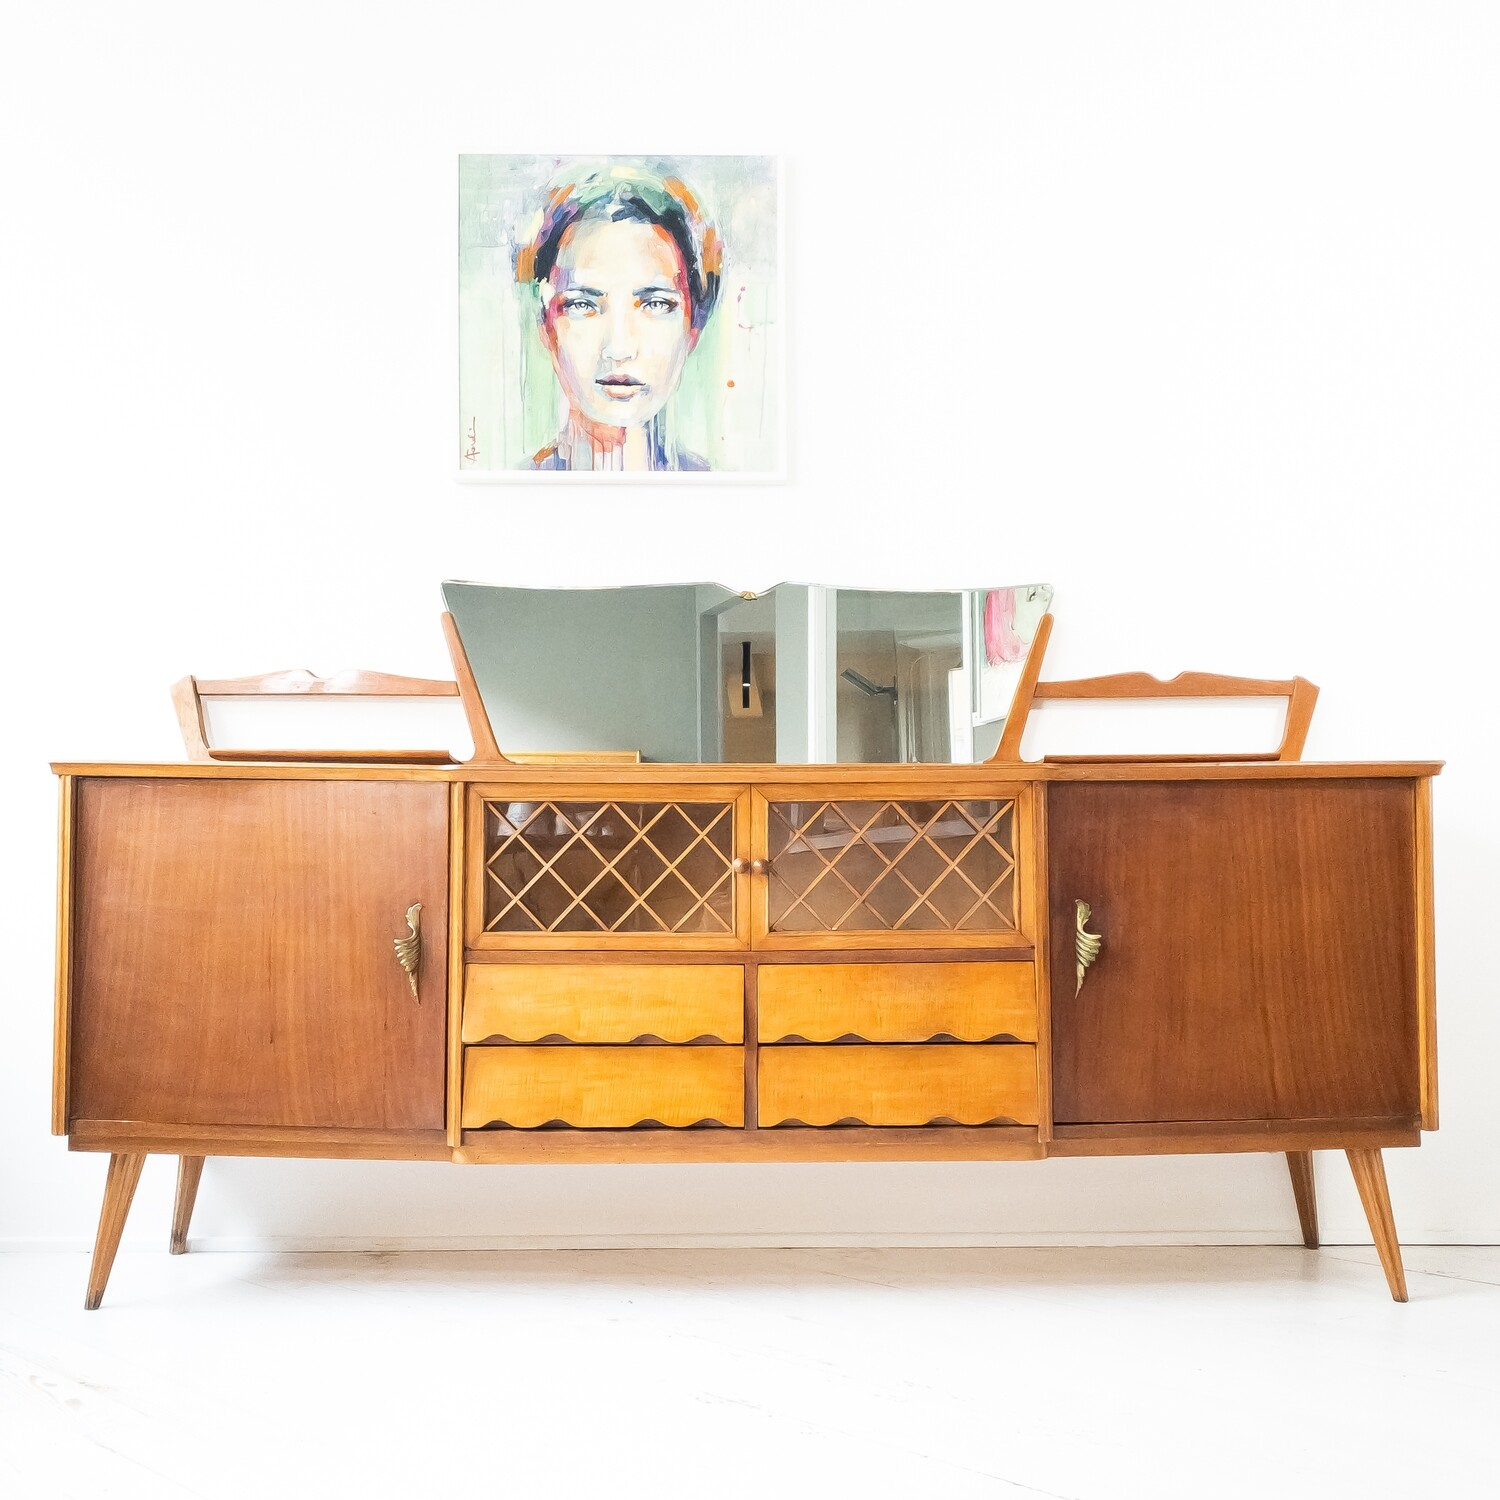 Sideboard with mirror, 1960s